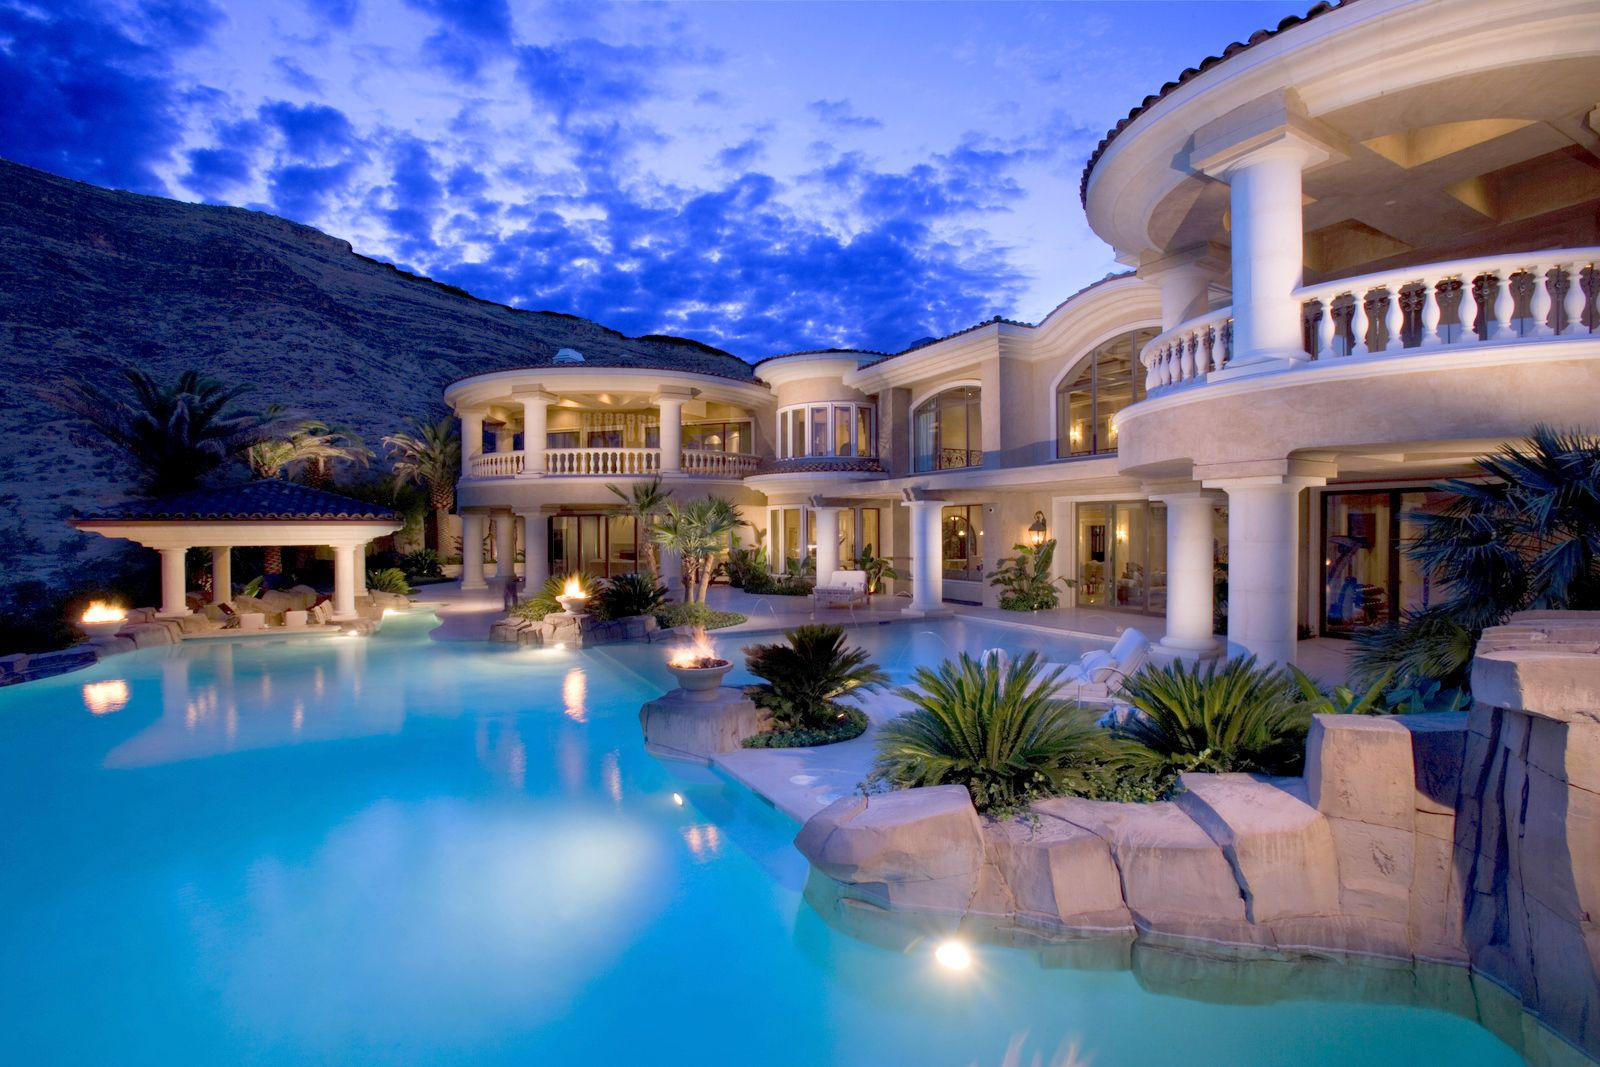 Luxury Homes With Pools million dollar homes | million dollar luxury home | beautiful